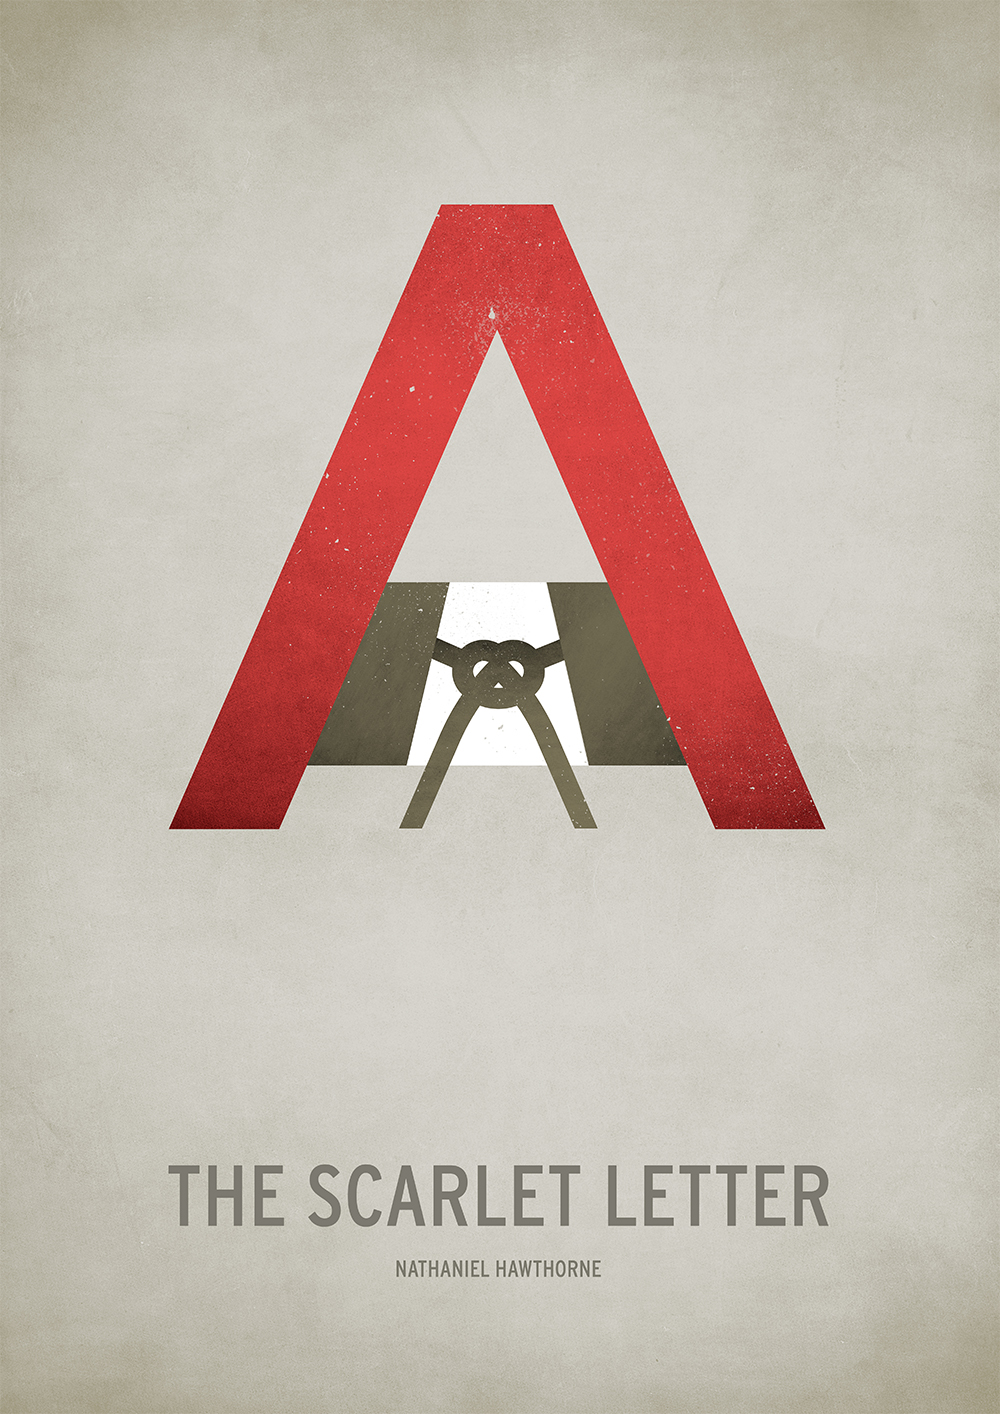 the scarlet letter and the modern Free term papers on the scarlet letter available at planet paperscom, the largest free term paper community.